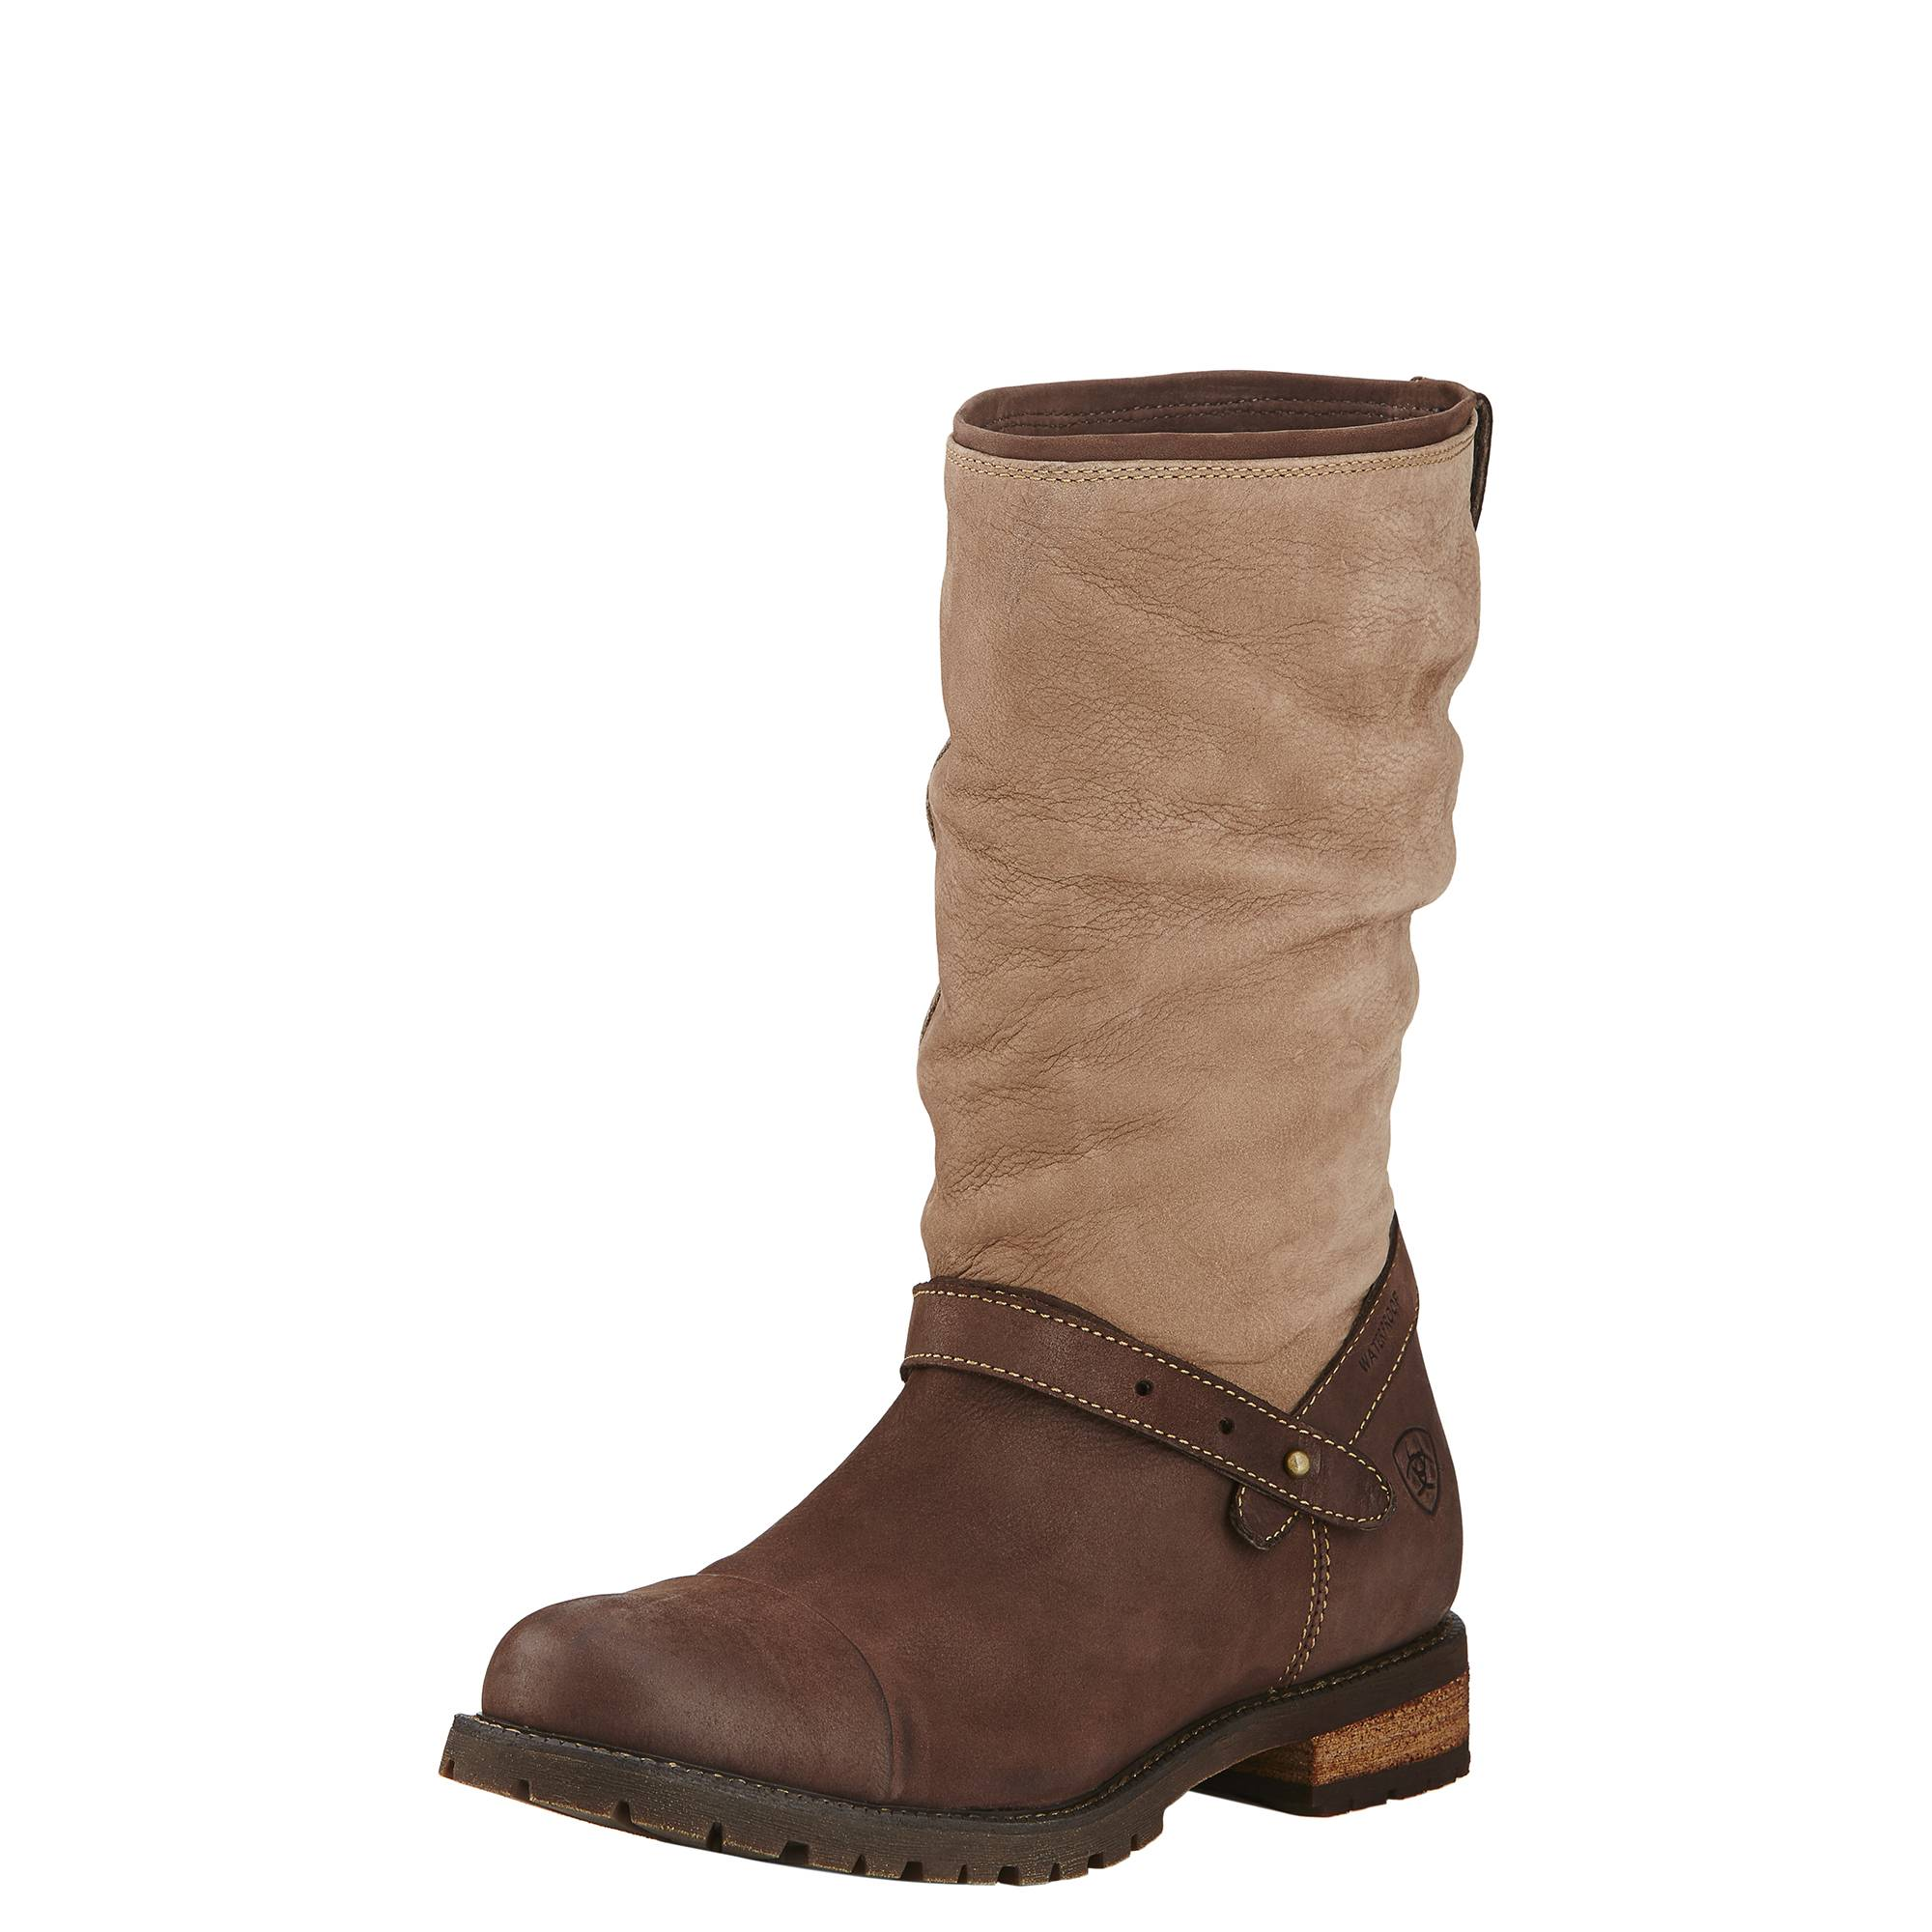 Ariat Chatsworth Boots - Ladies - Seal Brown